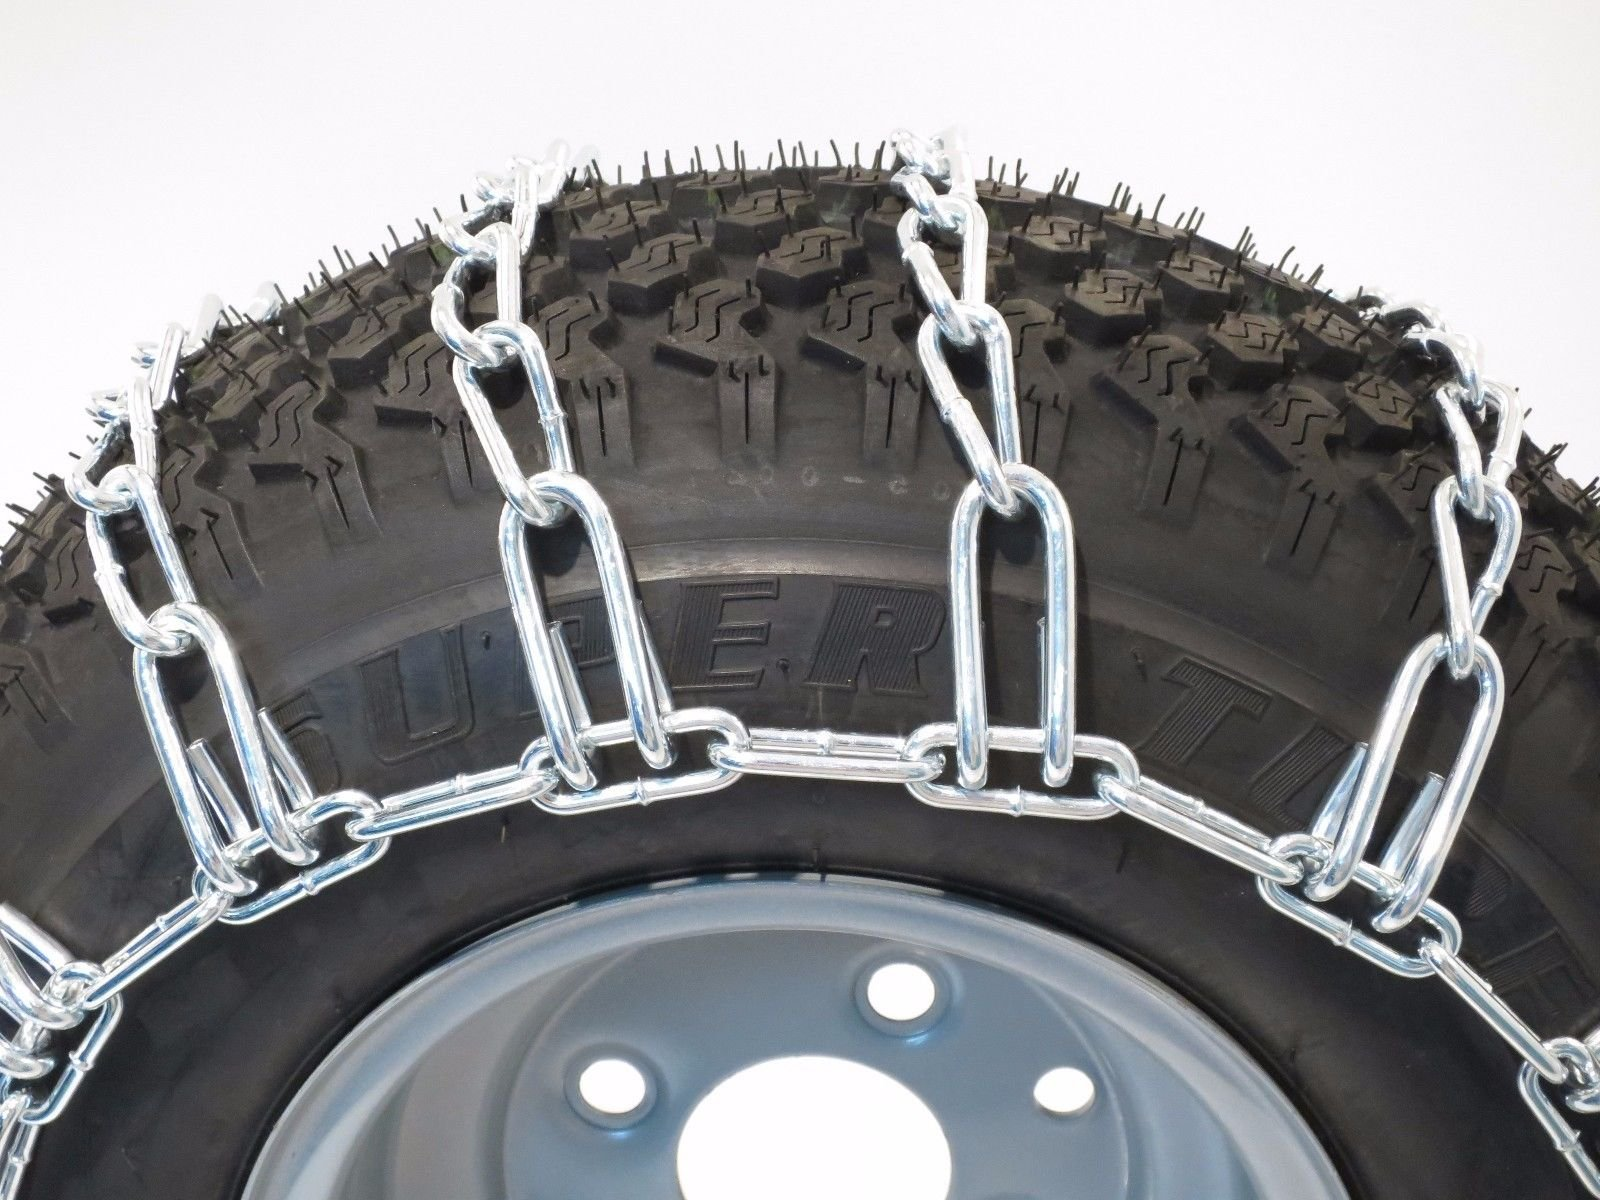 New PAIR 2 Link TIRE CHAINS 23x10.5x12 fits many Honda MUV Pioneer UTV Vehicle by The ROP Shop by The ROP Shop (Image #1)